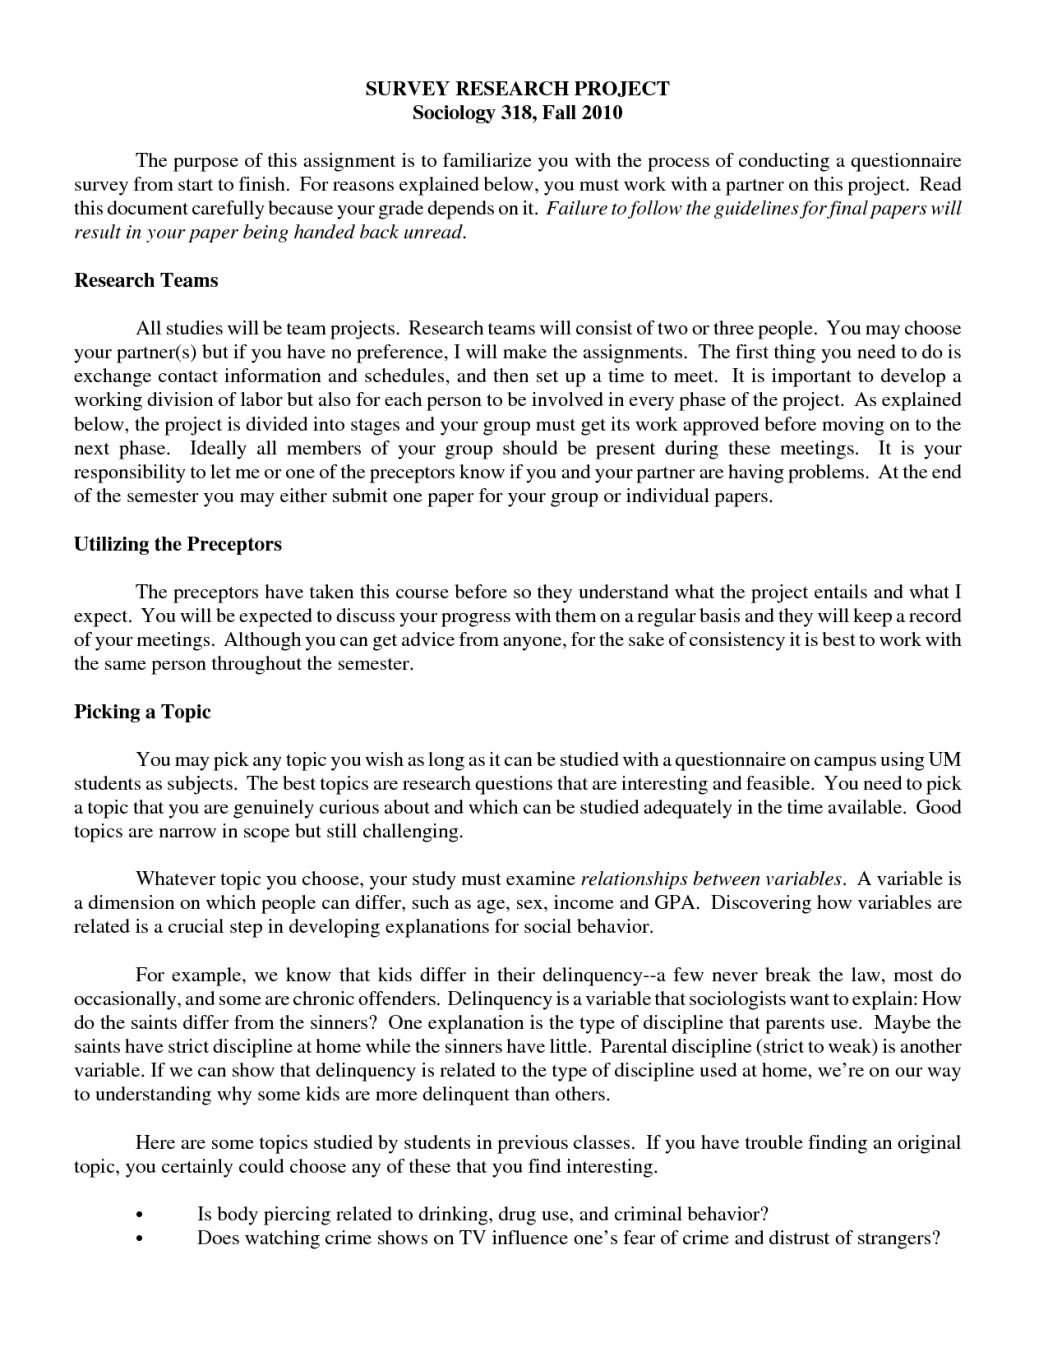 010 Good Hooks For Essaysmples Of How To Write Hook Research Writing Narrative Bcl12 Typesmple Comparison High School Expository Argumentative 1048x1356 Essay Excellent Essays Examples Persuasive Full